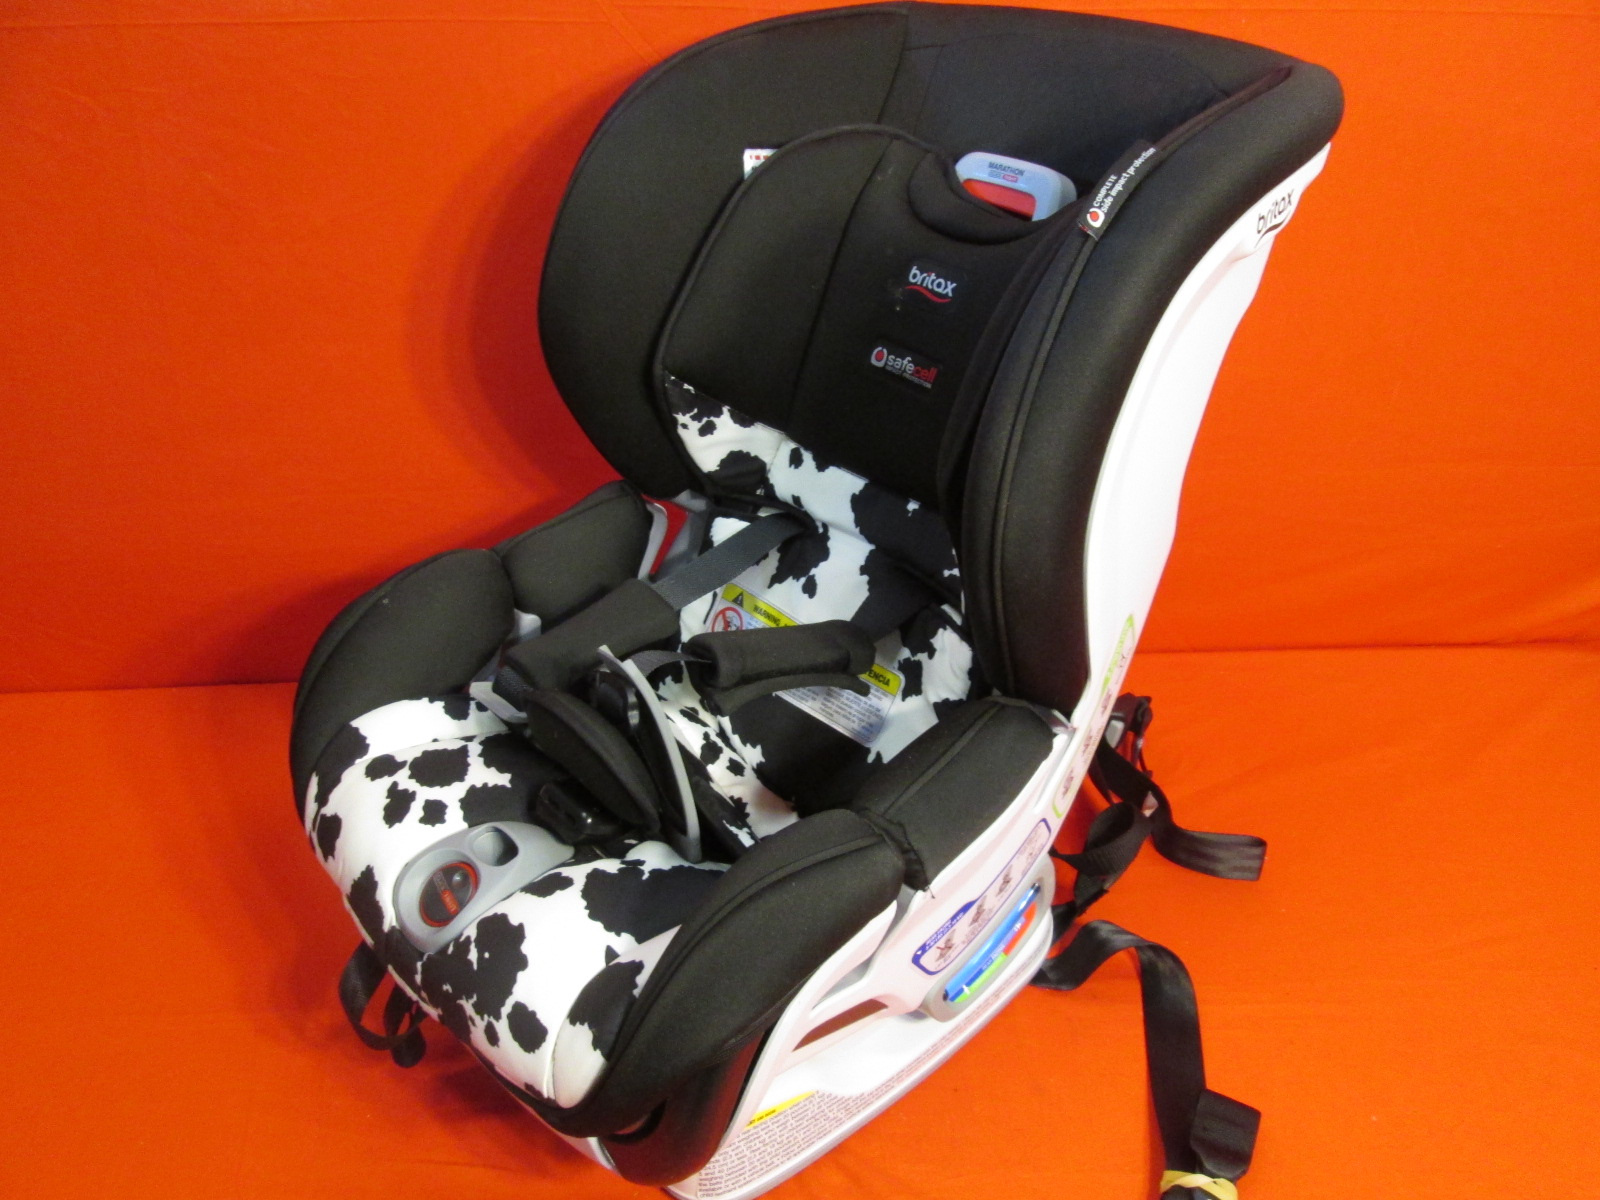 britax boulevard 70 g3 convertible car seat britax boulevard 70 g3 xe convertible car seat in. Black Bedroom Furniture Sets. Home Design Ideas